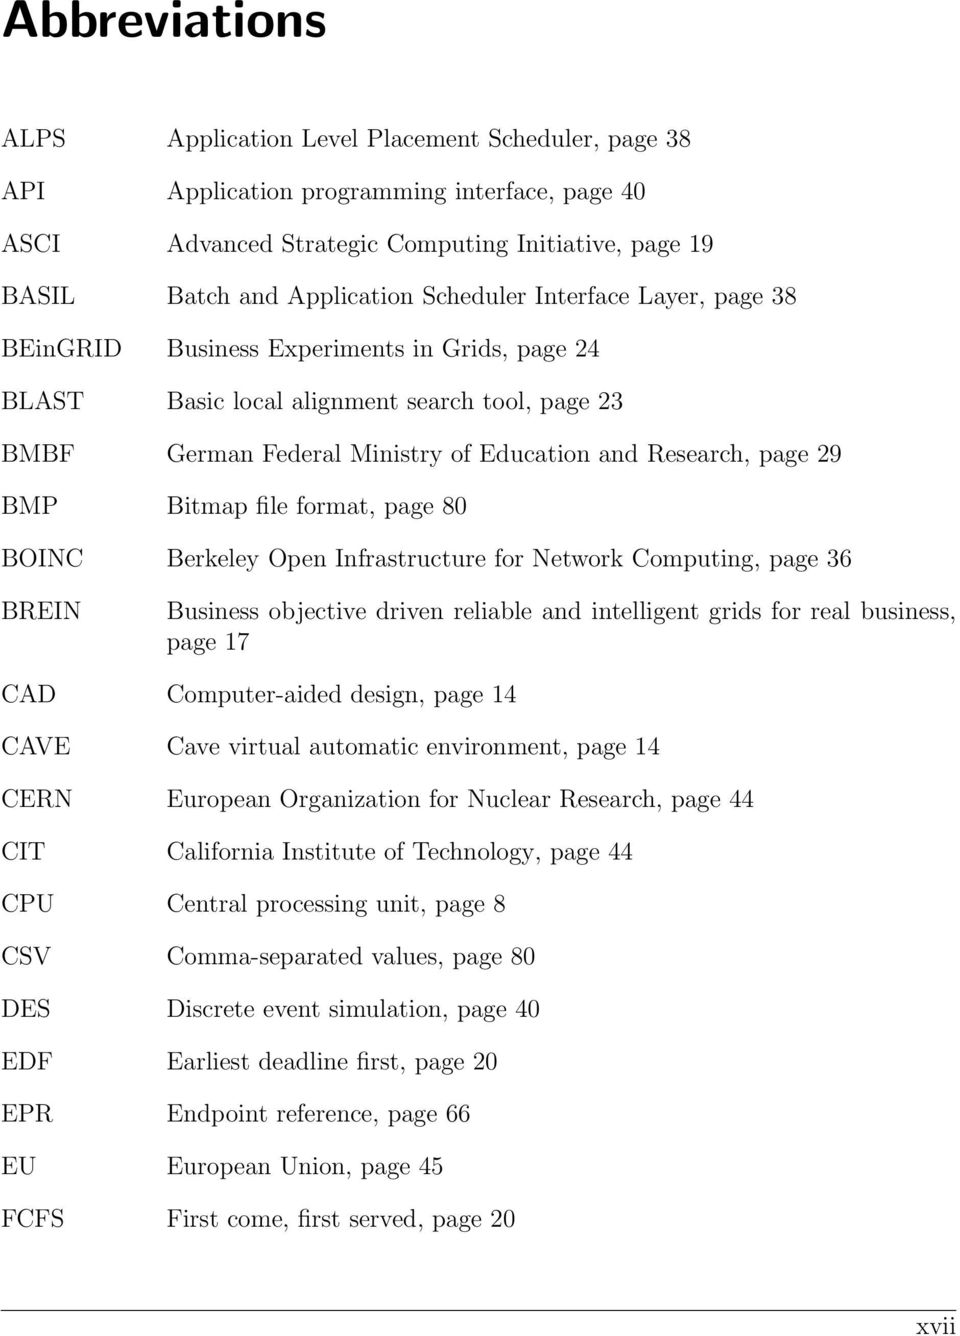 Bitmap file format, page 80 BOINC Berkeley Open Infrastructure for Network Computing, page 36 BREIN Business objective driven reliable and intelligent grids for real business, page 17 CAD